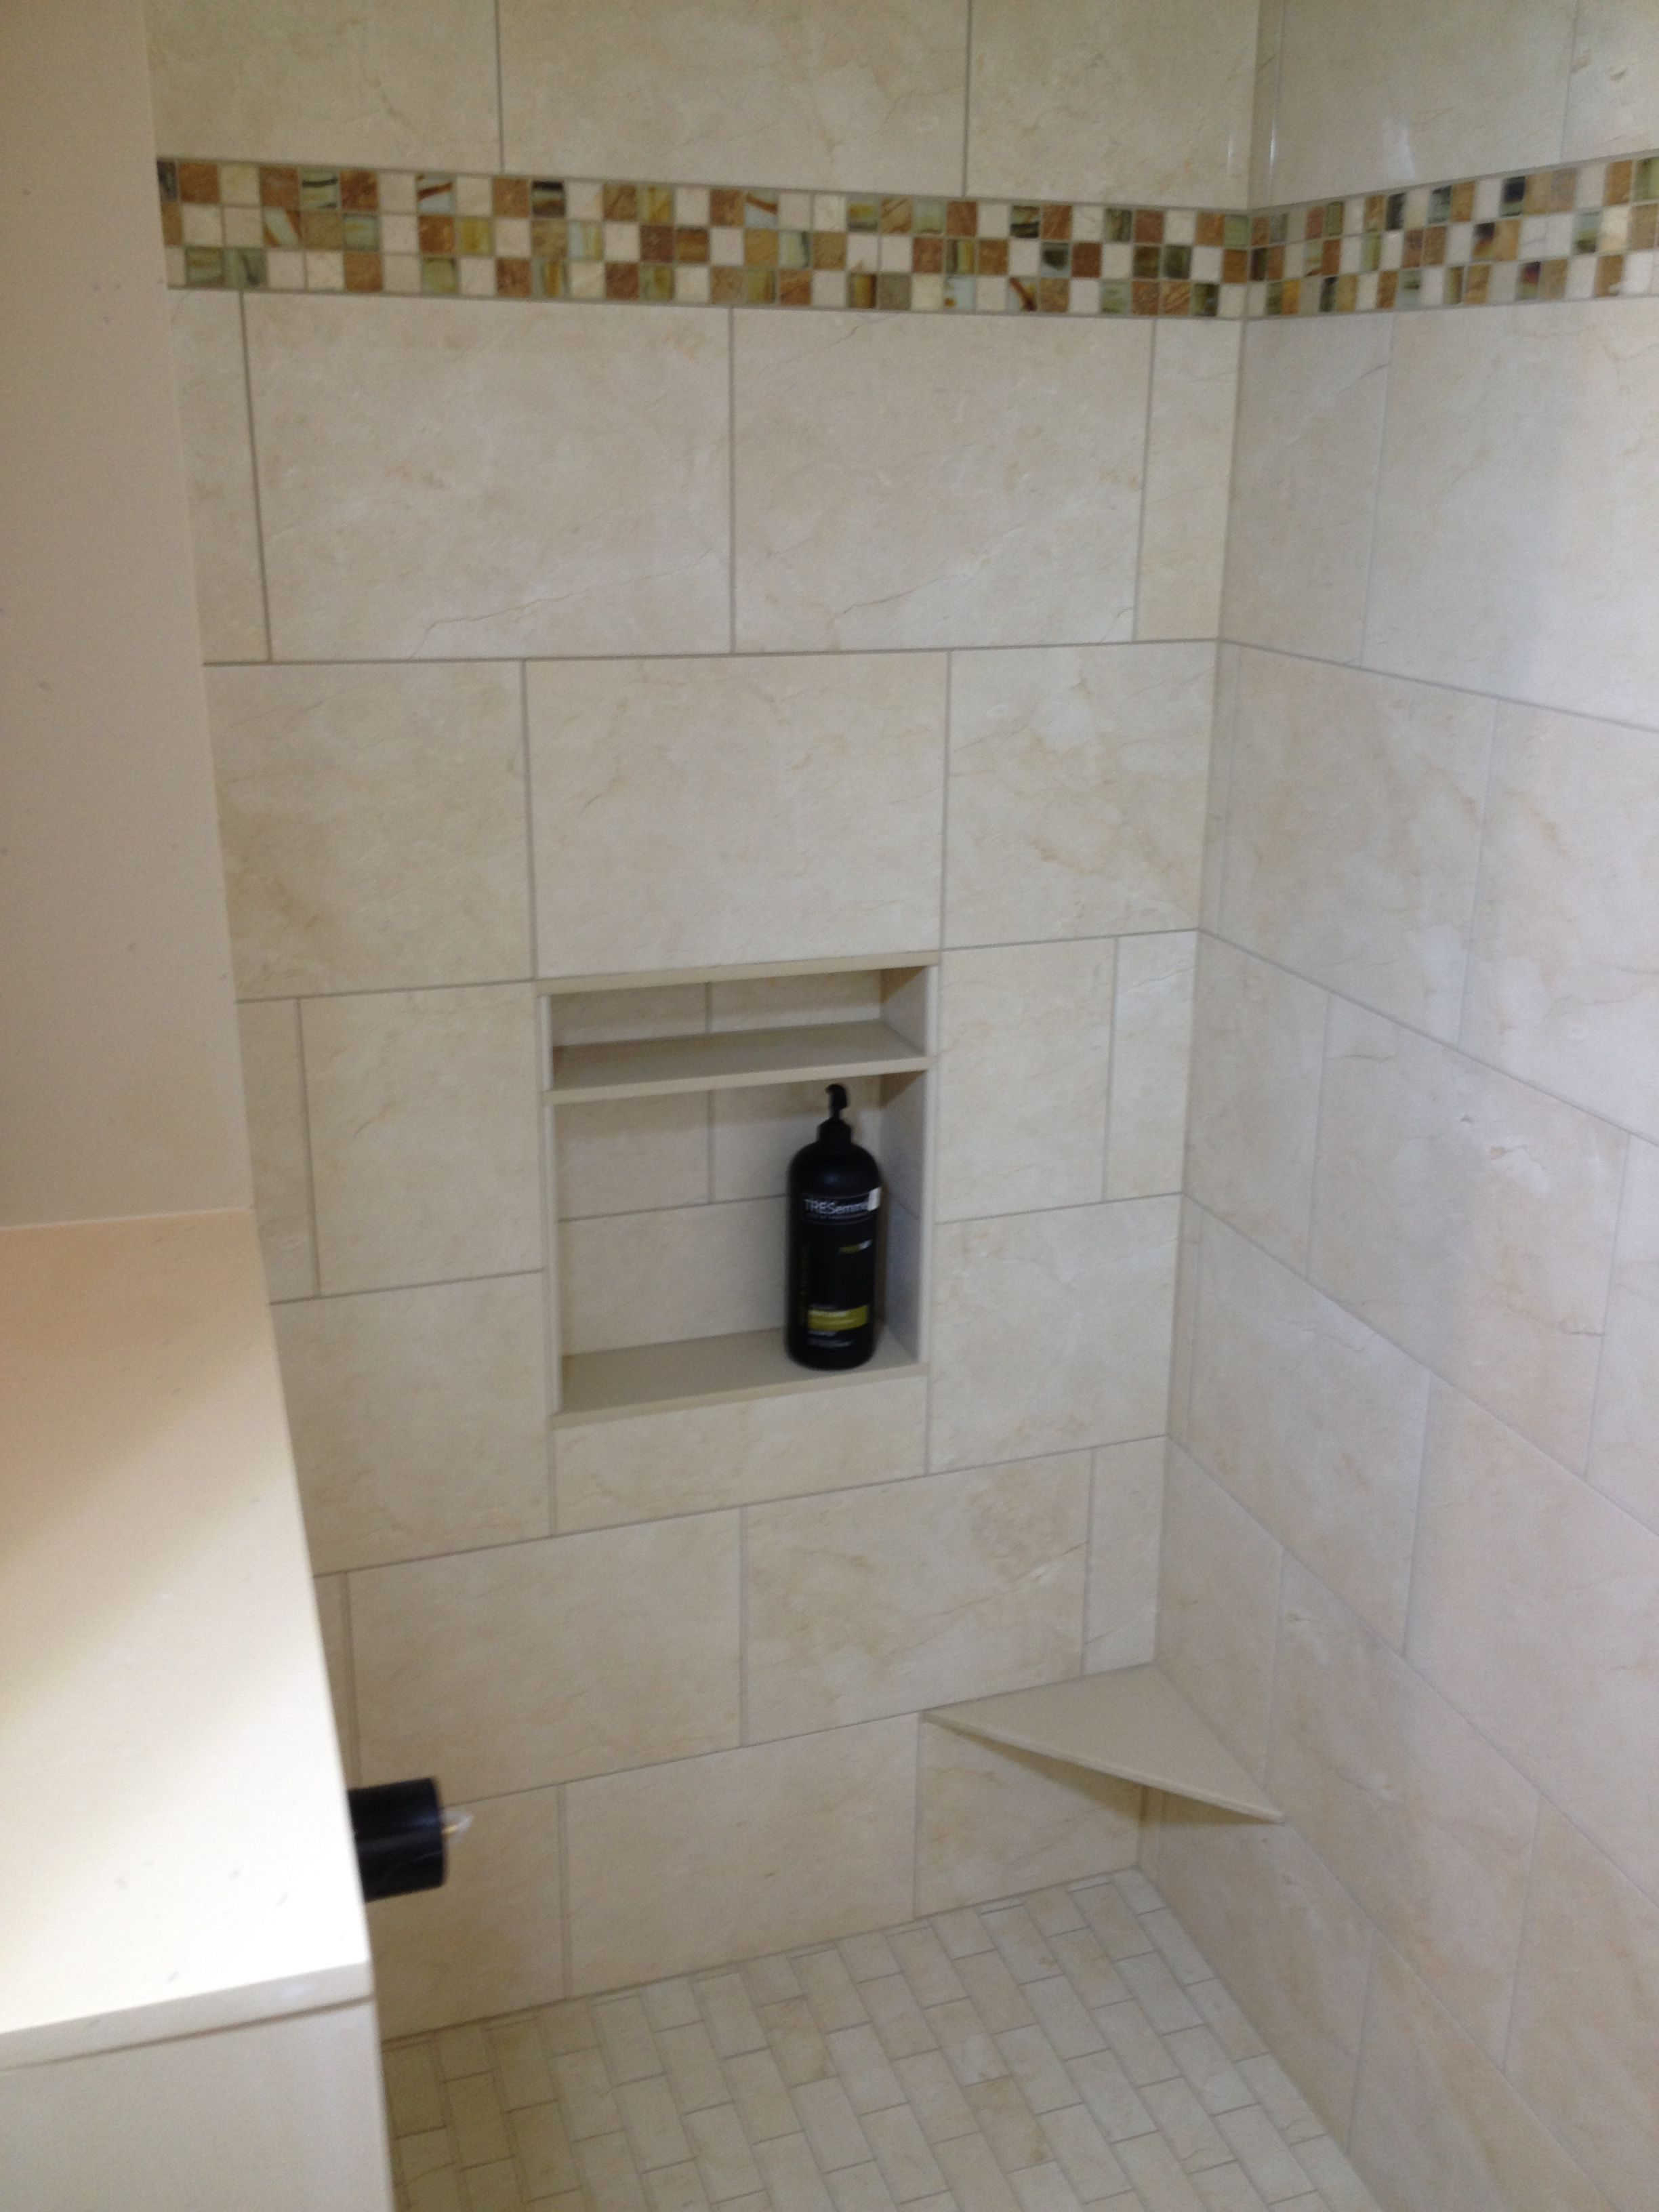 Shower With Accent Border Niche And Foot Rest For Shaving